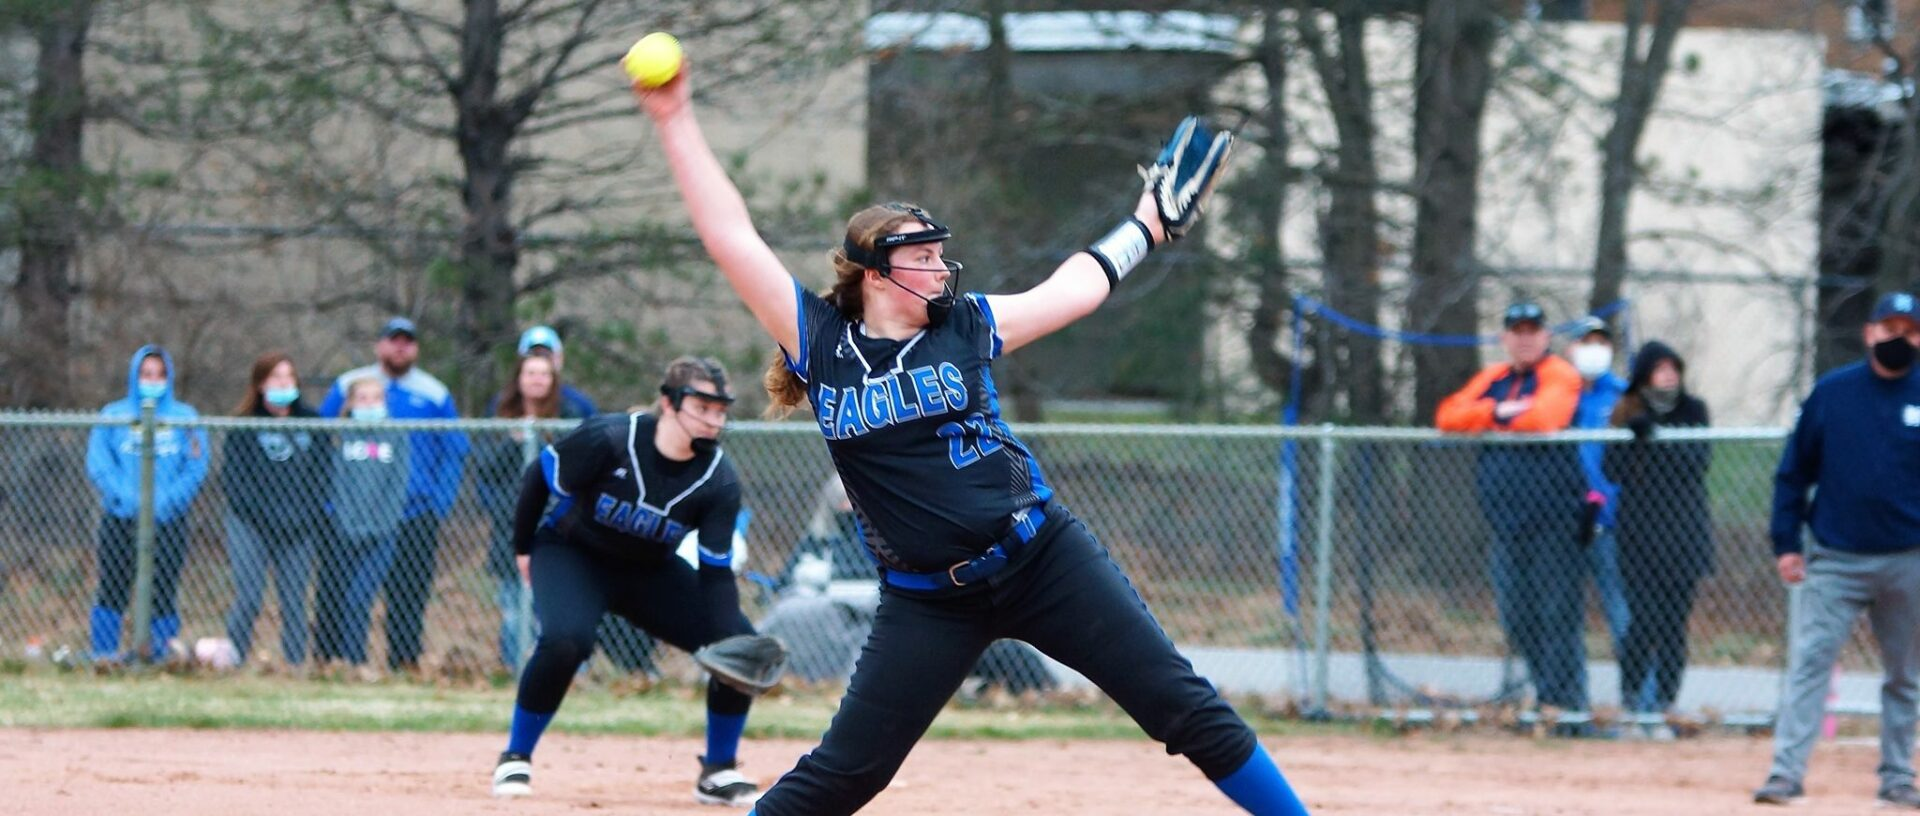 From Coletta to Schumann to Schumann: Oakridge softball leadership changes, but the winning tradition stays the same